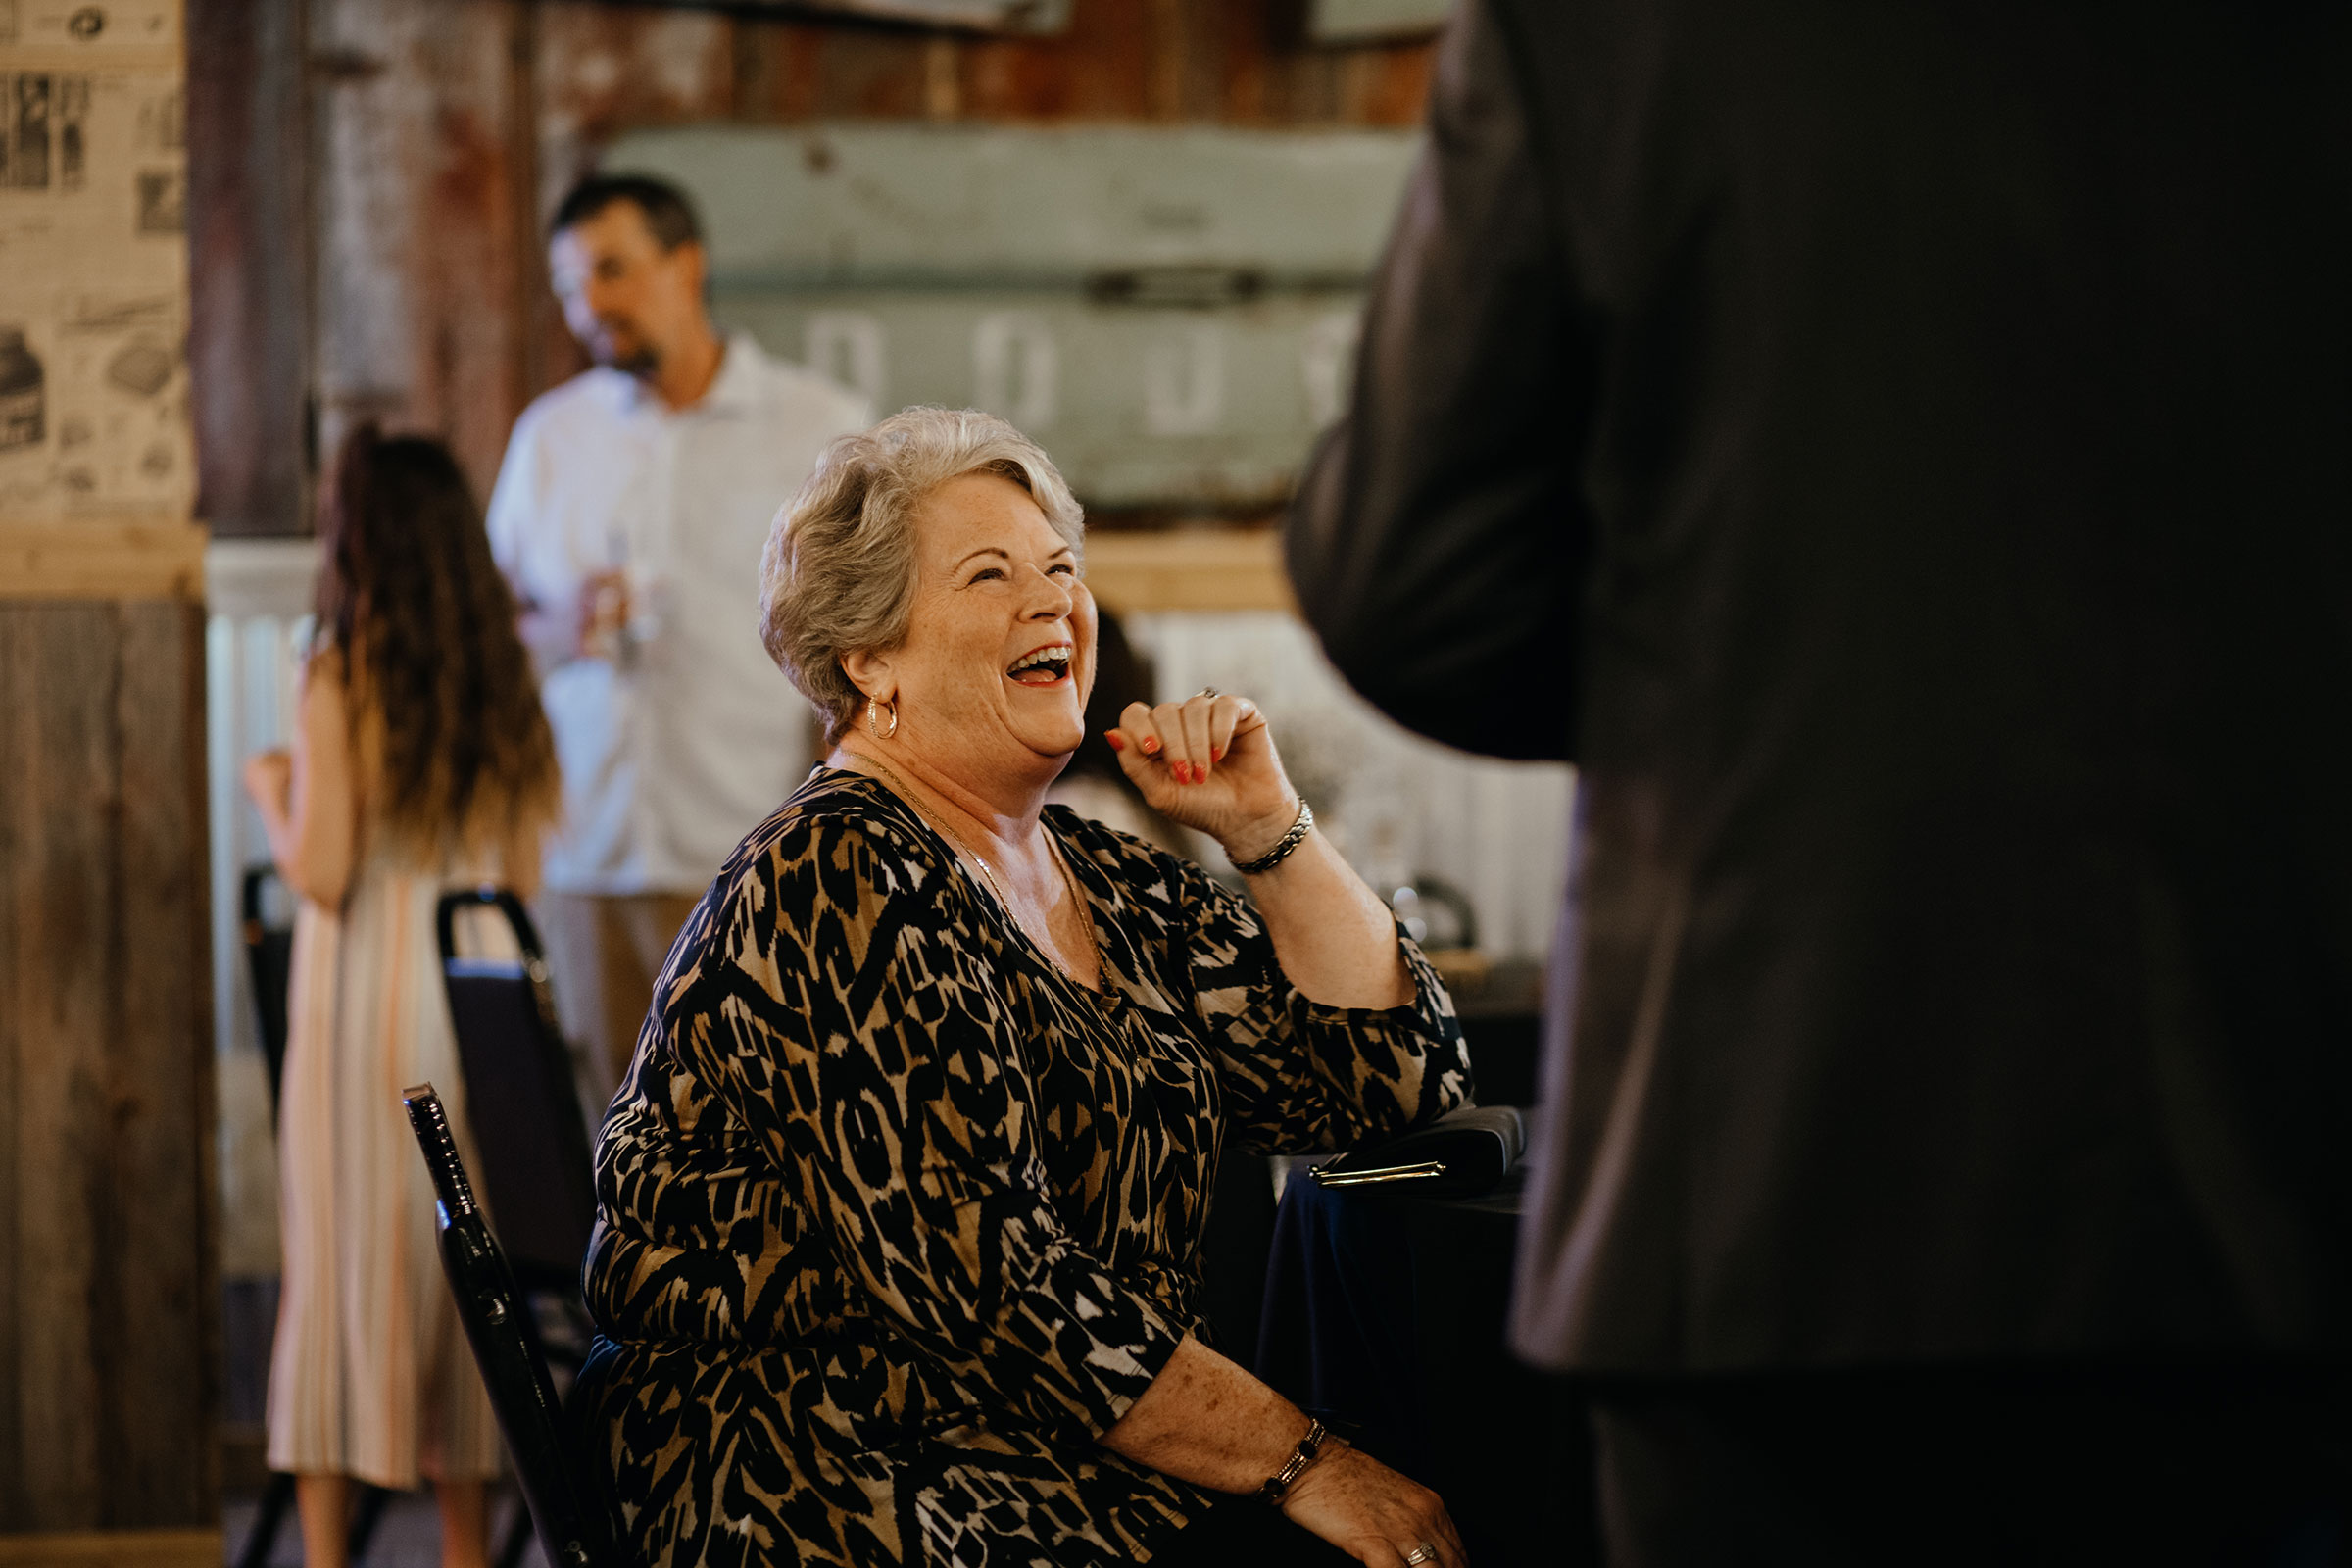 lady-laughing-at-another-guest-decades-event-center-building-desmoines-iowa-raelyn-ramey-photography..jpg